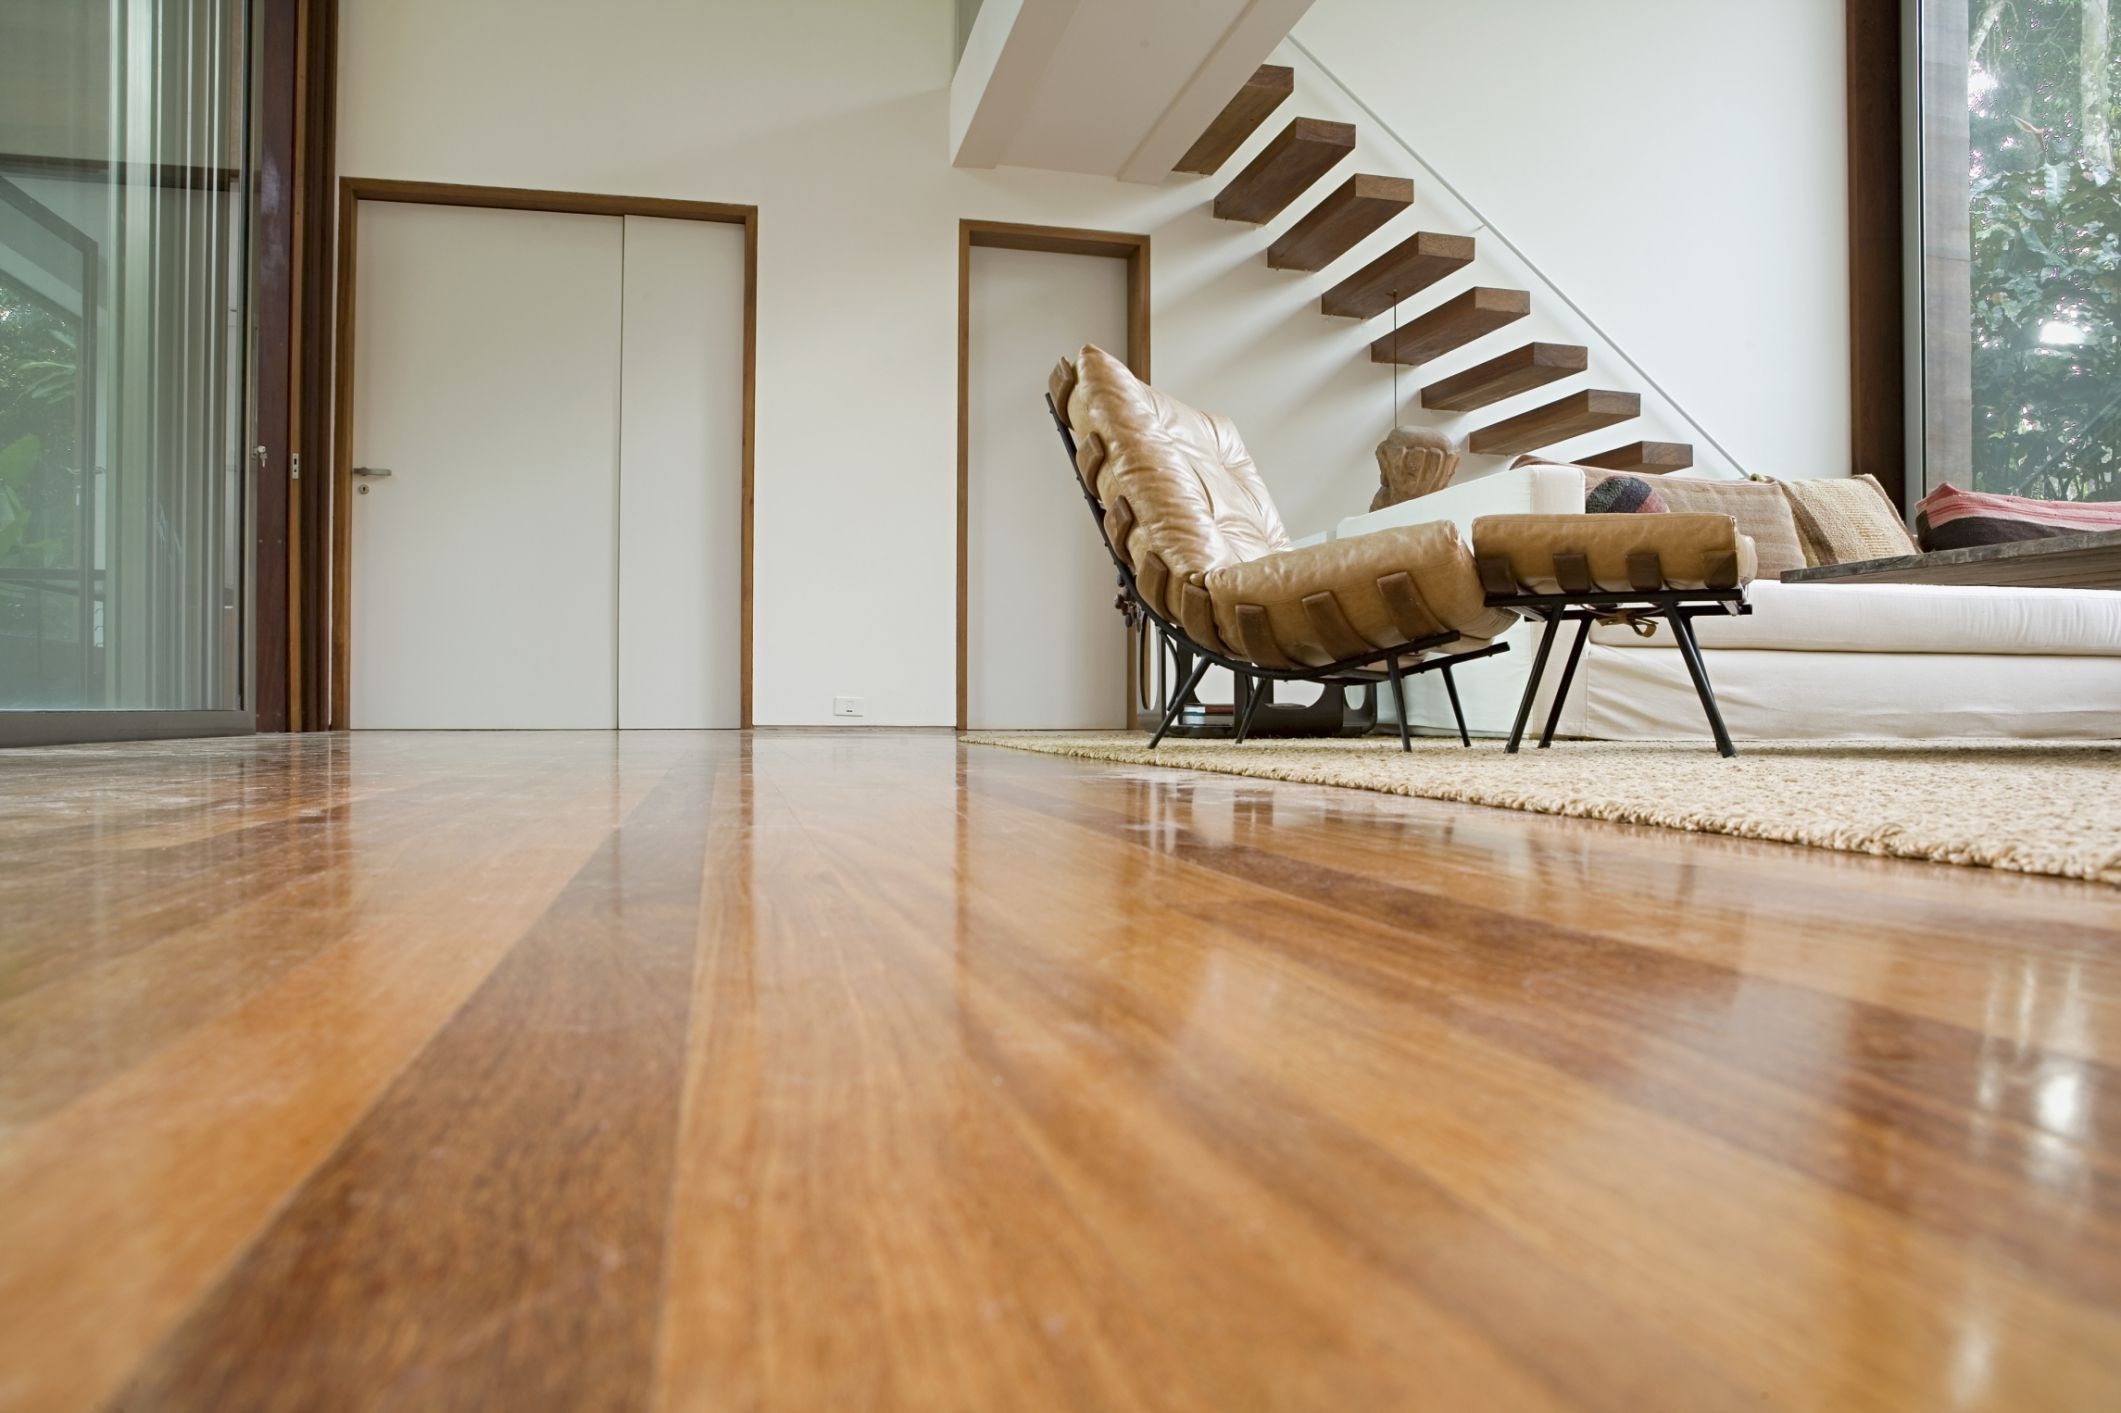 Armstrong Hardwood Flooring Prices Of Engineered Wood Flooring Vs solid Wood Flooring Pertaining to 200571260 001 Highres 56a49dec5f9b58b7d0d7dc1e